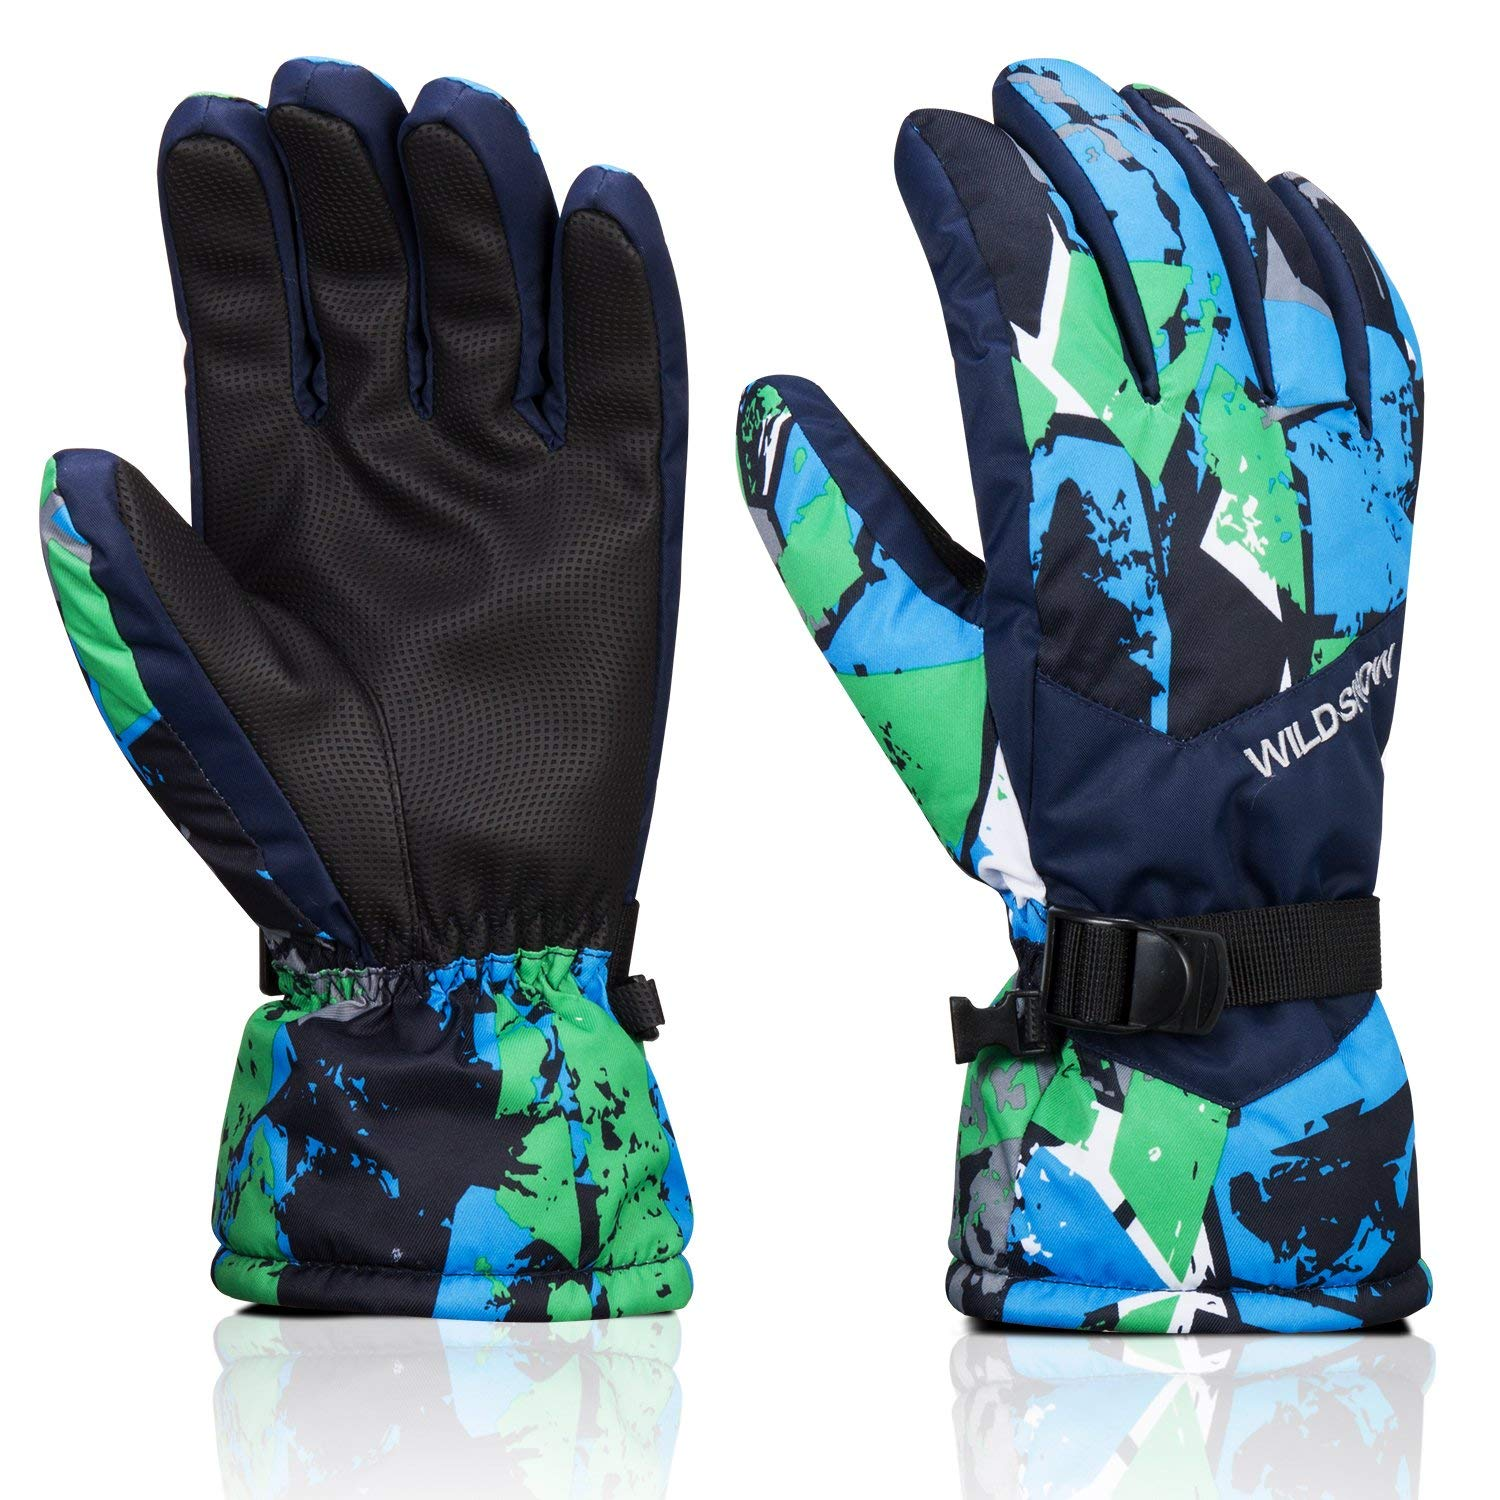 Ski Gloves, MoHo Winter Gloves Warm Breathable Waterproof Gloves Men's Women's Windproof Snow Gloves for Skiing, Snowboarding, Skating, Running, Cycling, Hiking, and Other Outdoor Activity